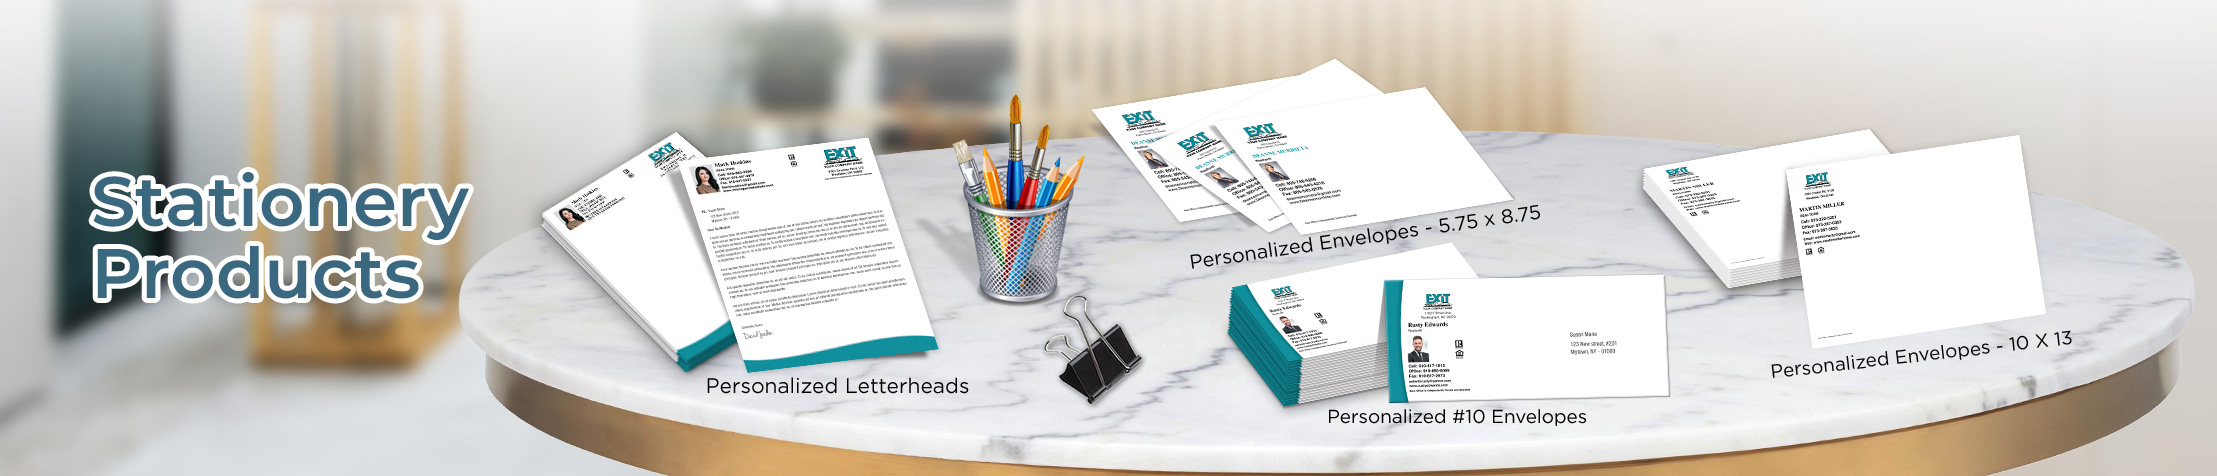 Exit Realty Real Estate Stationery Products - Keller Williams Approved Vendor - Custom Letterhead & Envelopes Stationery Products for Realtors | BestPrintBuy.com